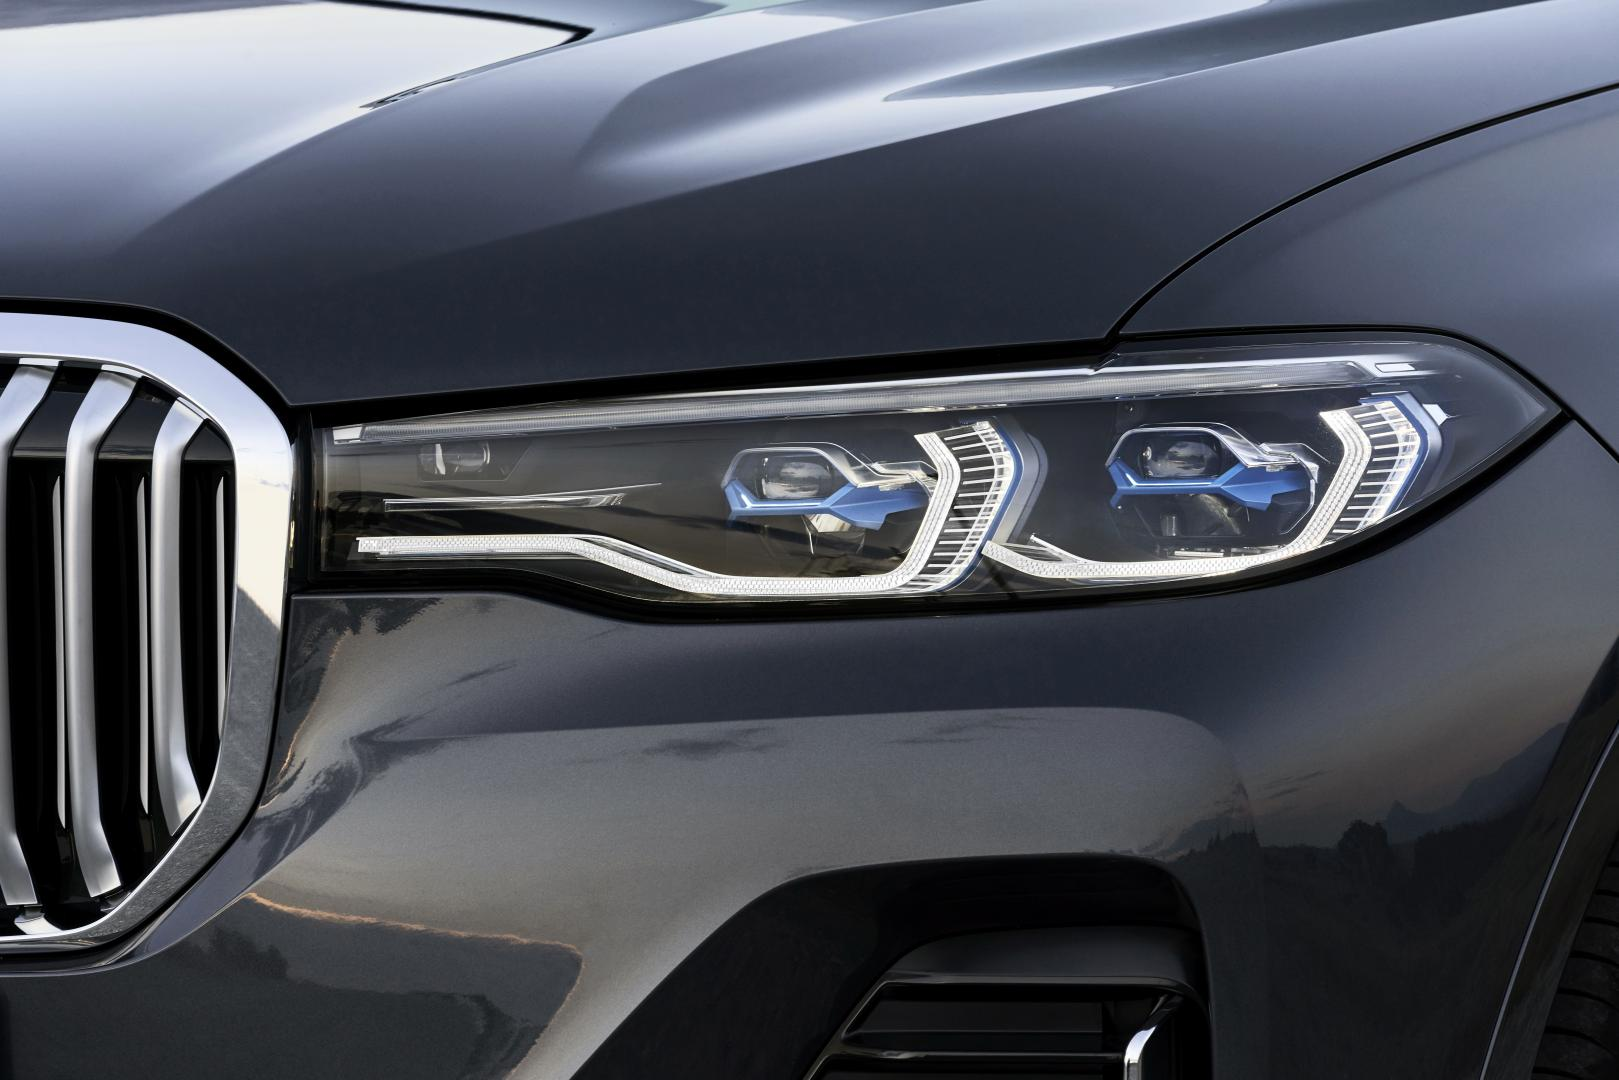 bmw x7 koplamp laser